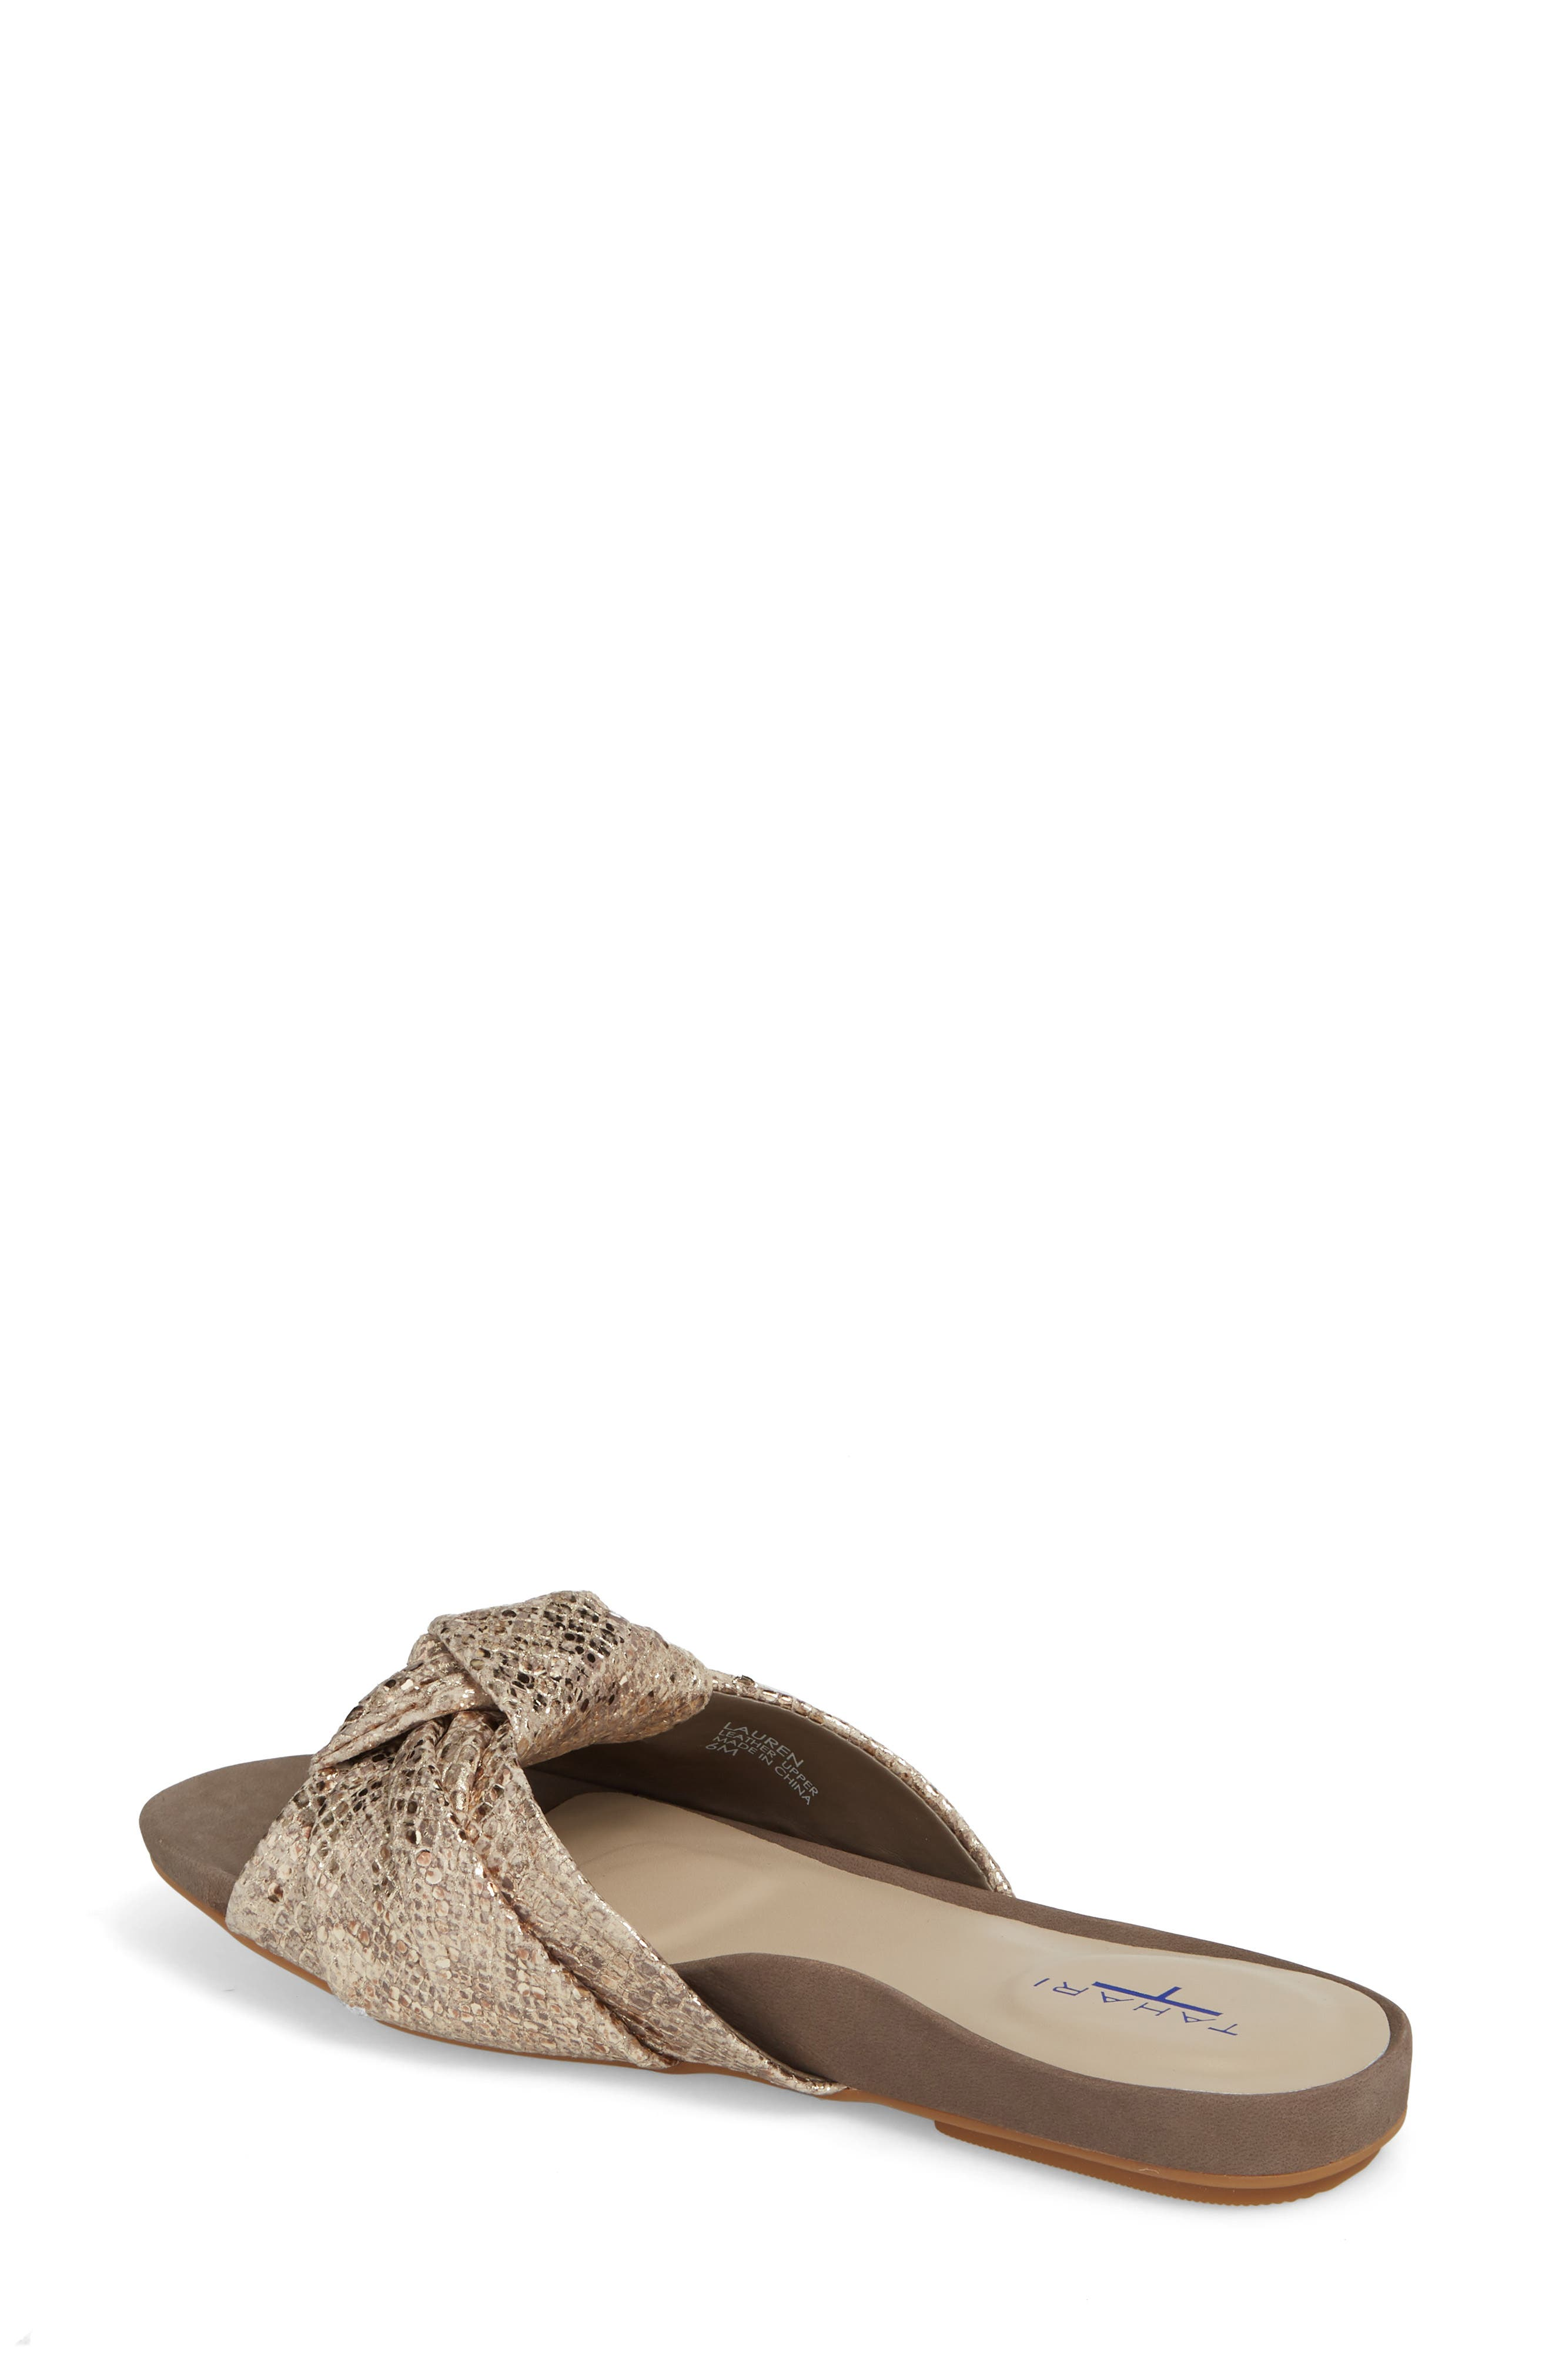 Lauren Slide Sandal,                             Alternate thumbnail 2, color,                             Taupe-Gold Suede